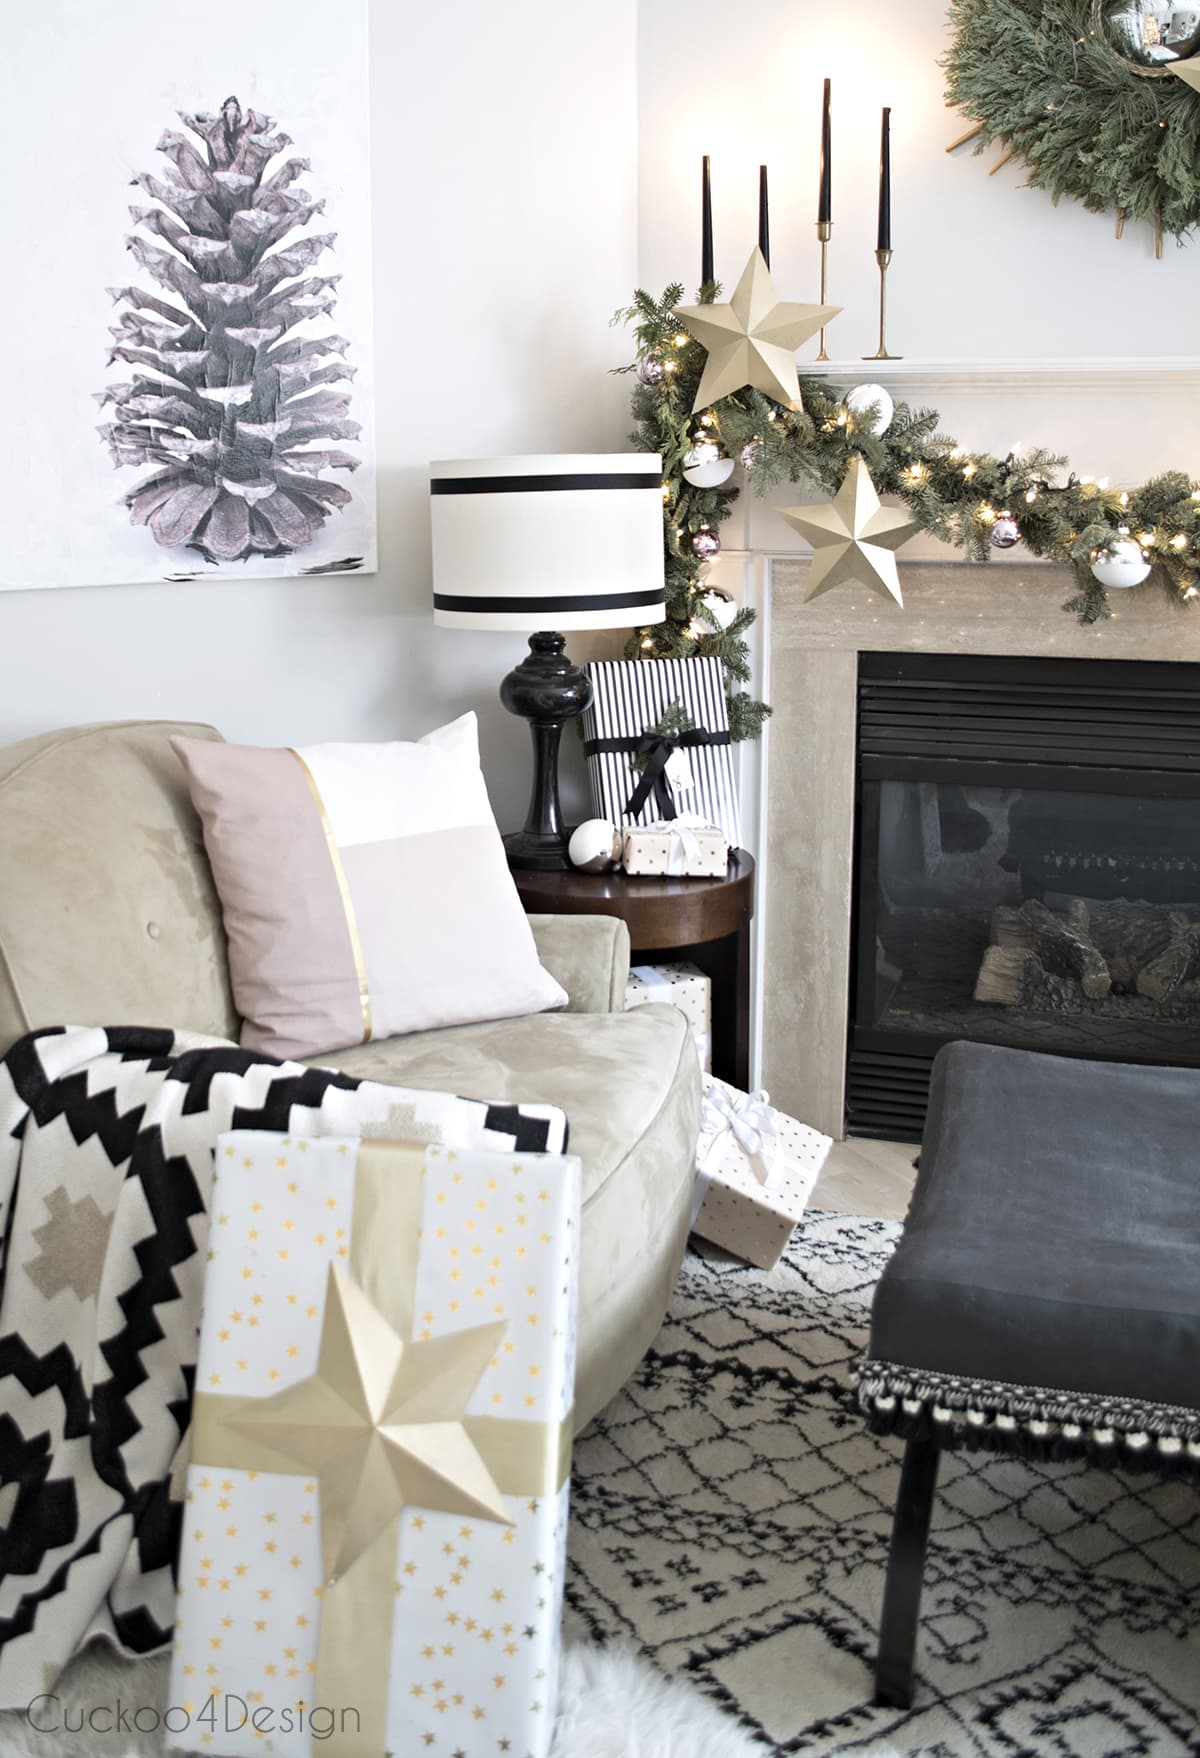 Black And White Fireplace Area With Real Garland And Wreath Pinecone Art Cozy Shag